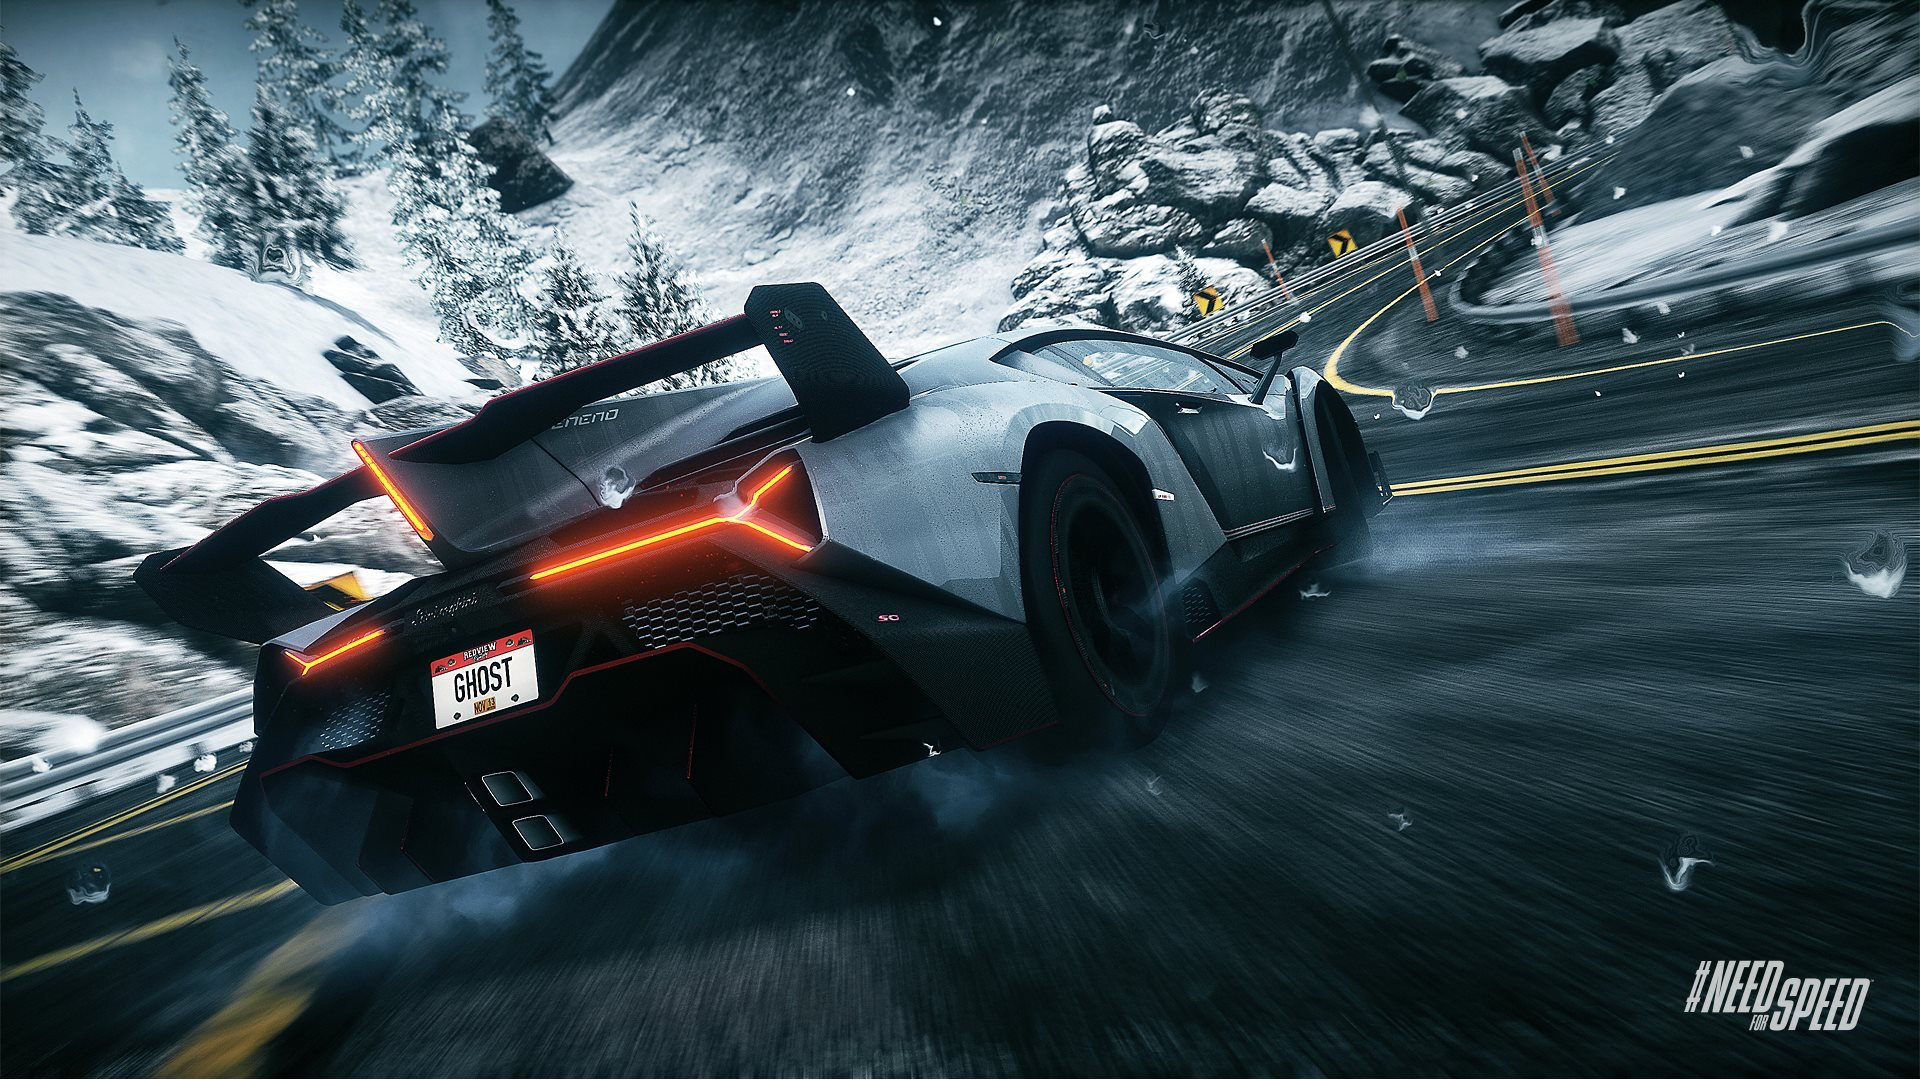 10 Most Popular Need For Speed Wallpaper Full Hd 1080p For: Need-for-Speed:-Rivals Wallpaper